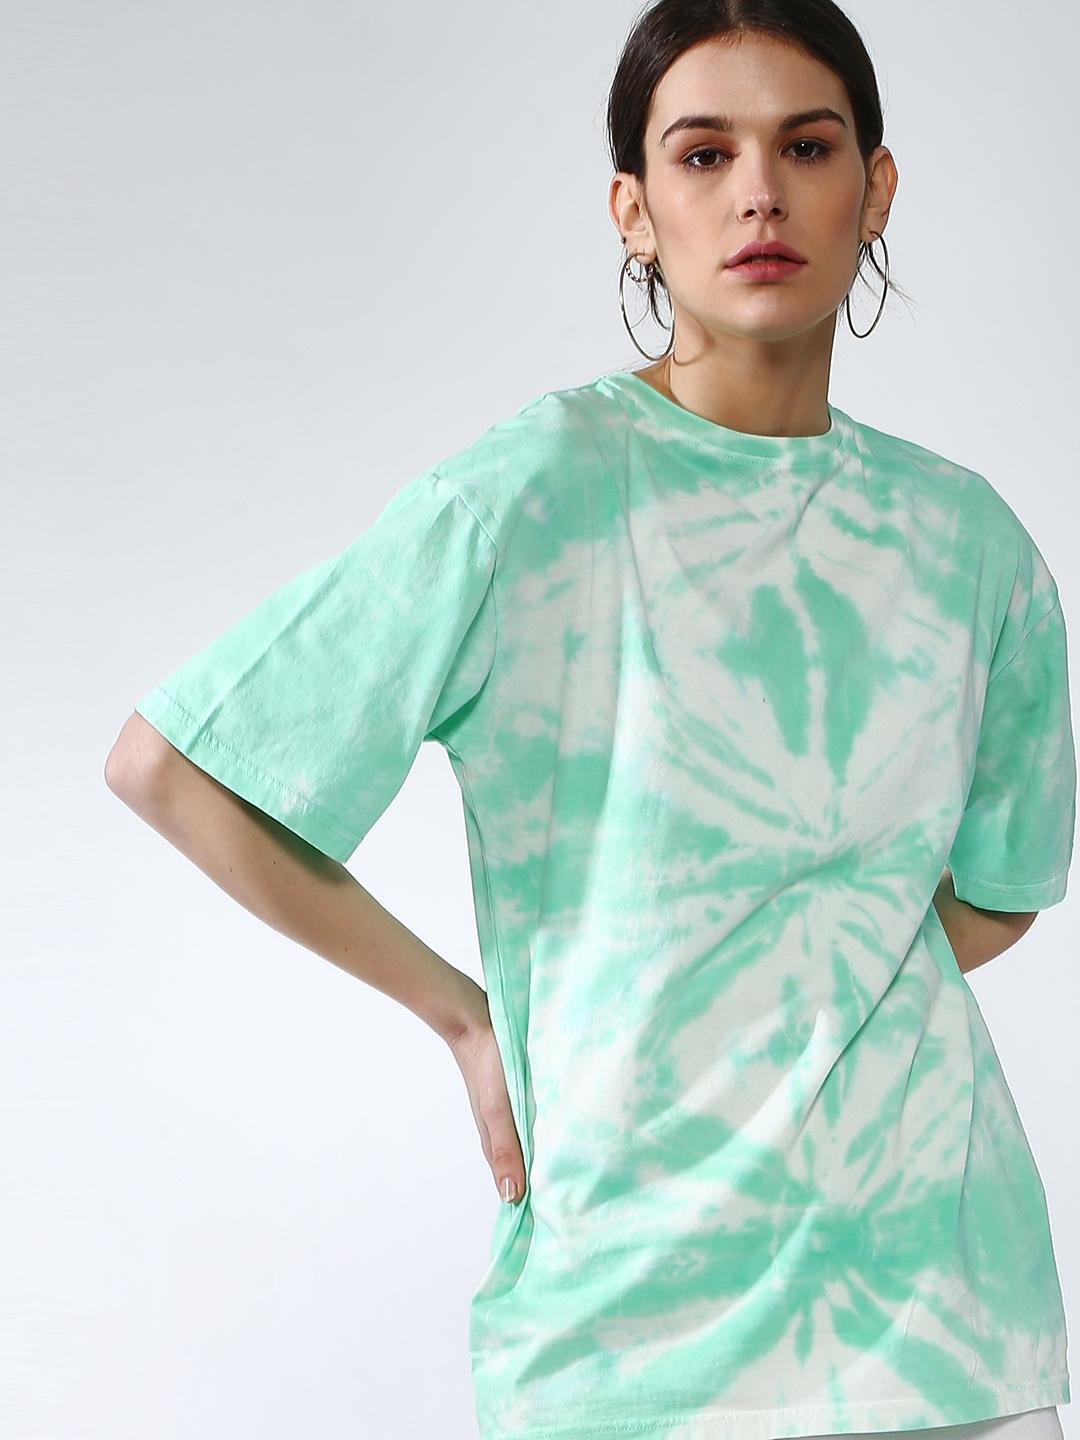 Blue Saint Green All Over Tie-Dye Oversized Fit T-shirt 1